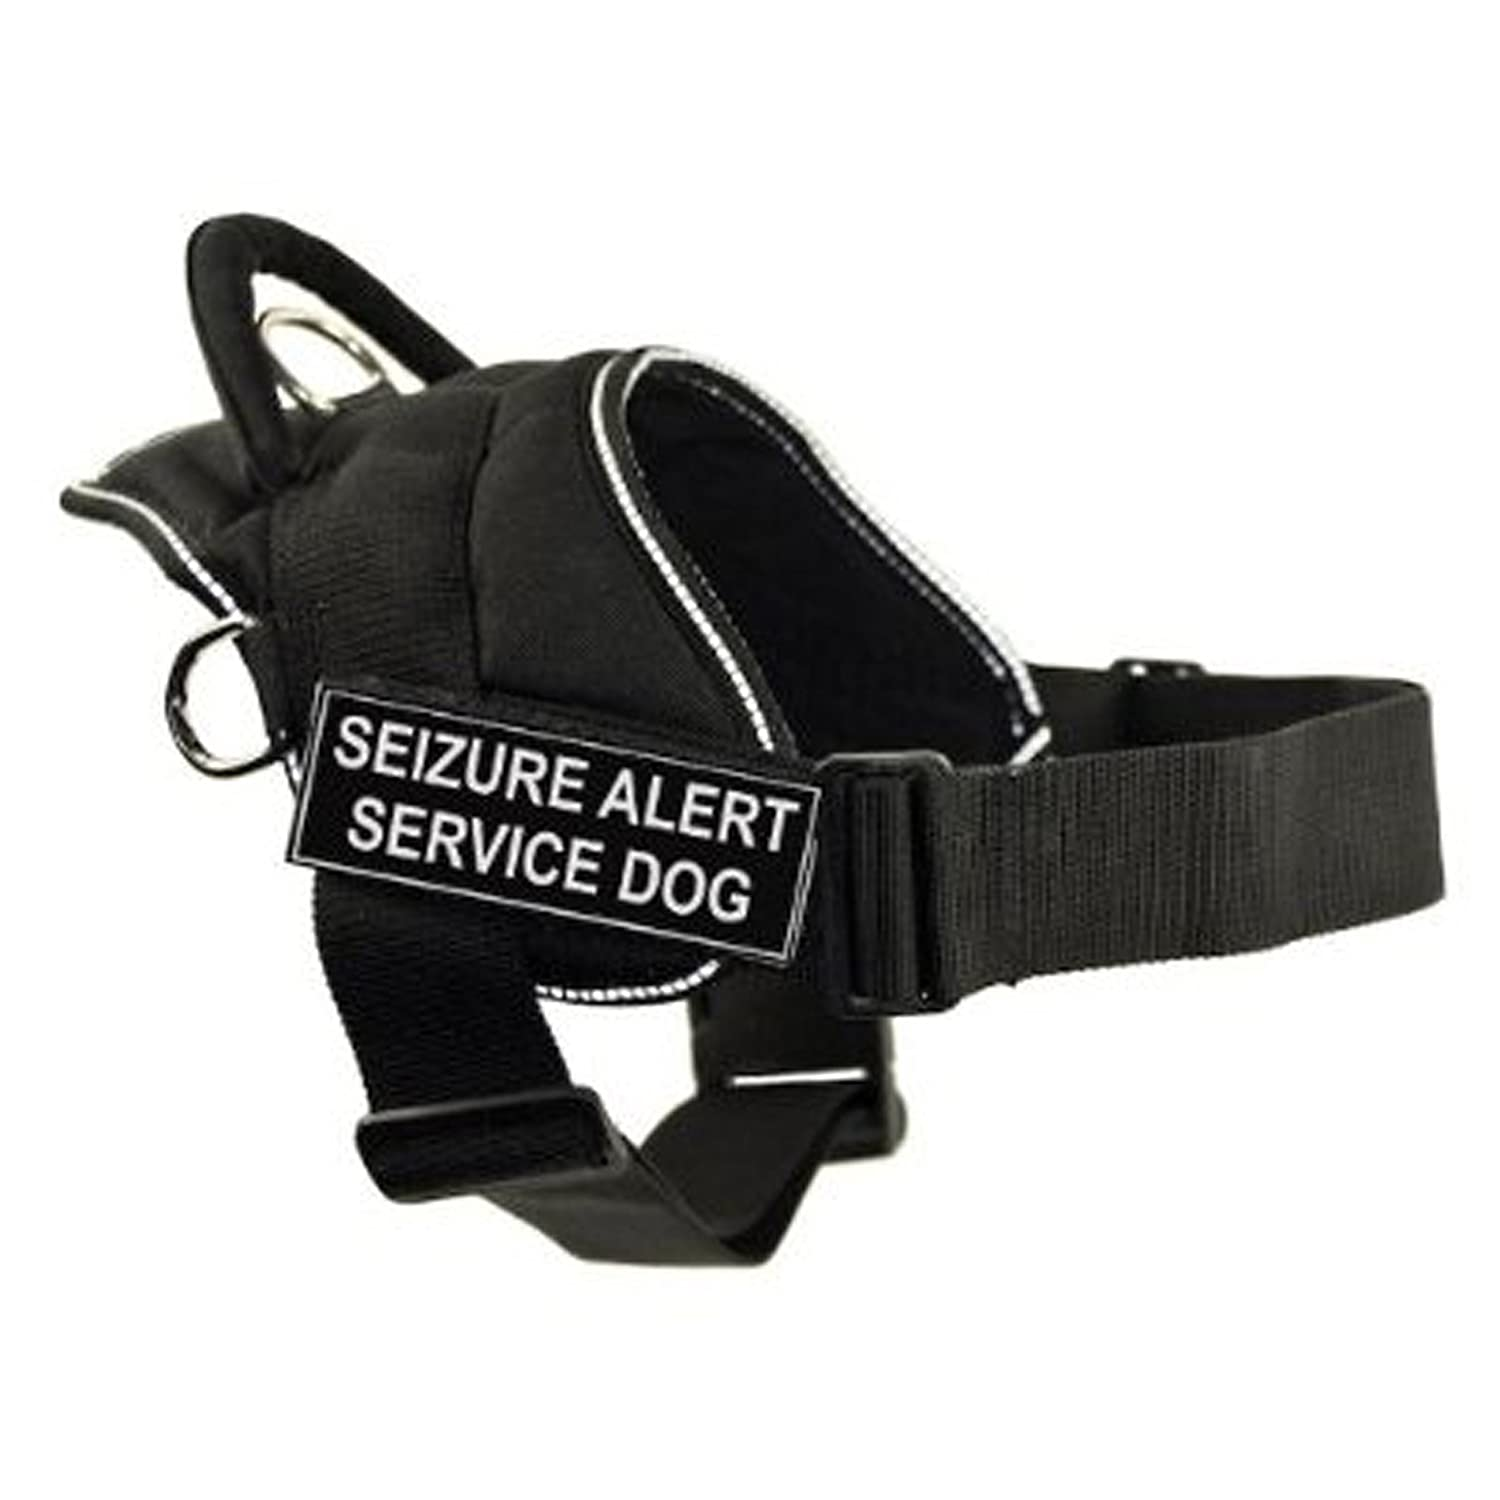 Dean & Tyler DT Fun Works Harness, Seizure Alert Service Dog, Black With Reflective Trim, X-Small Fits Girth Size  20-Inch to 23-Inch